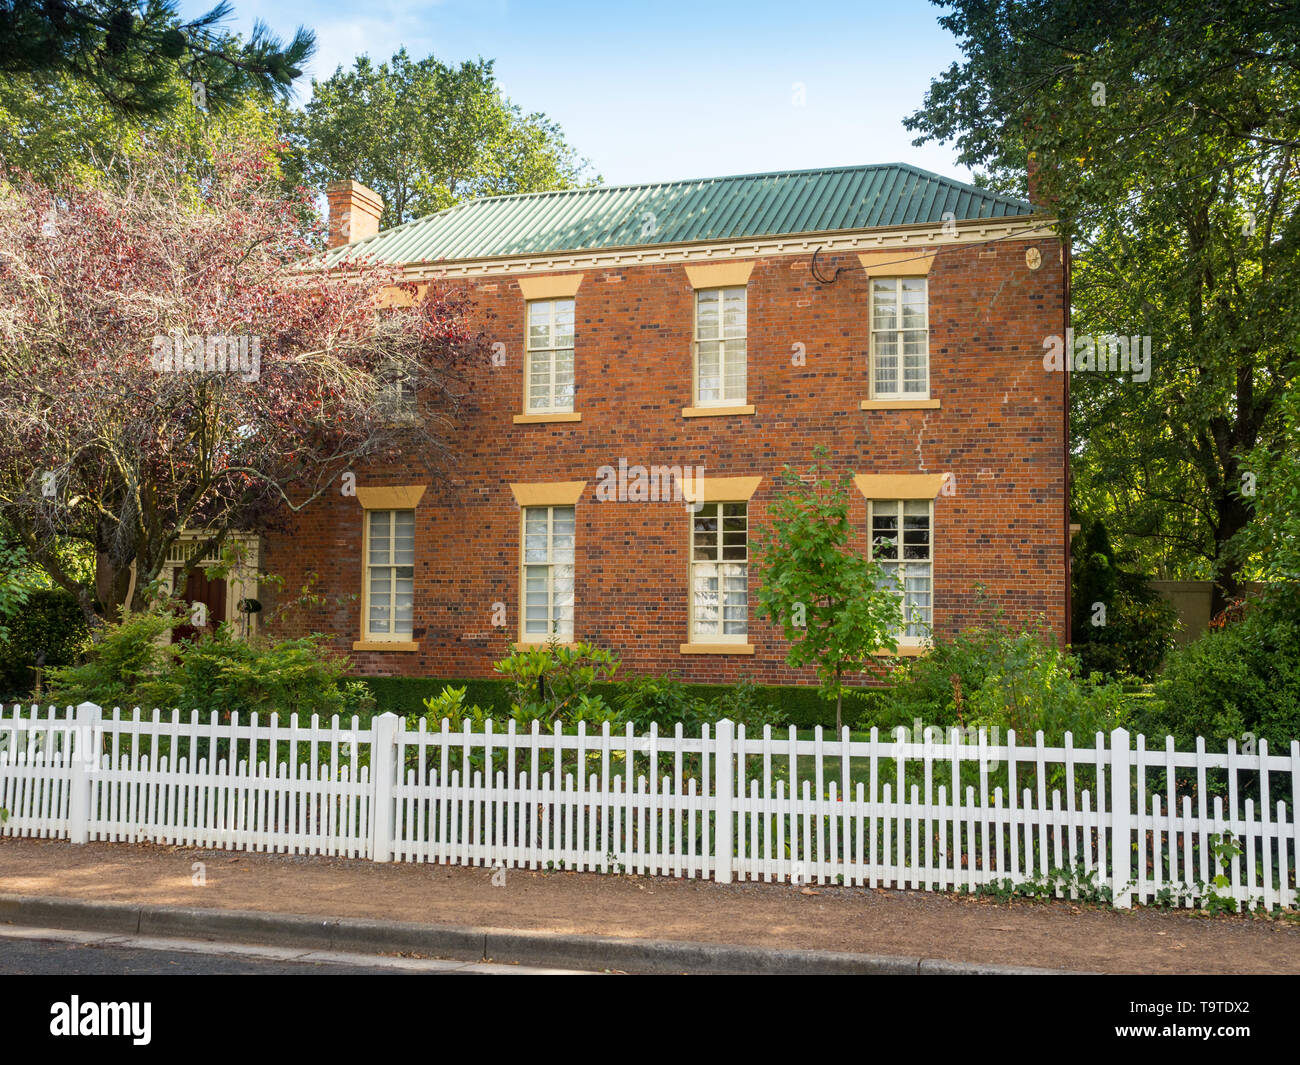 An elegant Georgian-style home in Russell Street, in the historic town of Evandale in Tasmania, Australia. Stock Photo